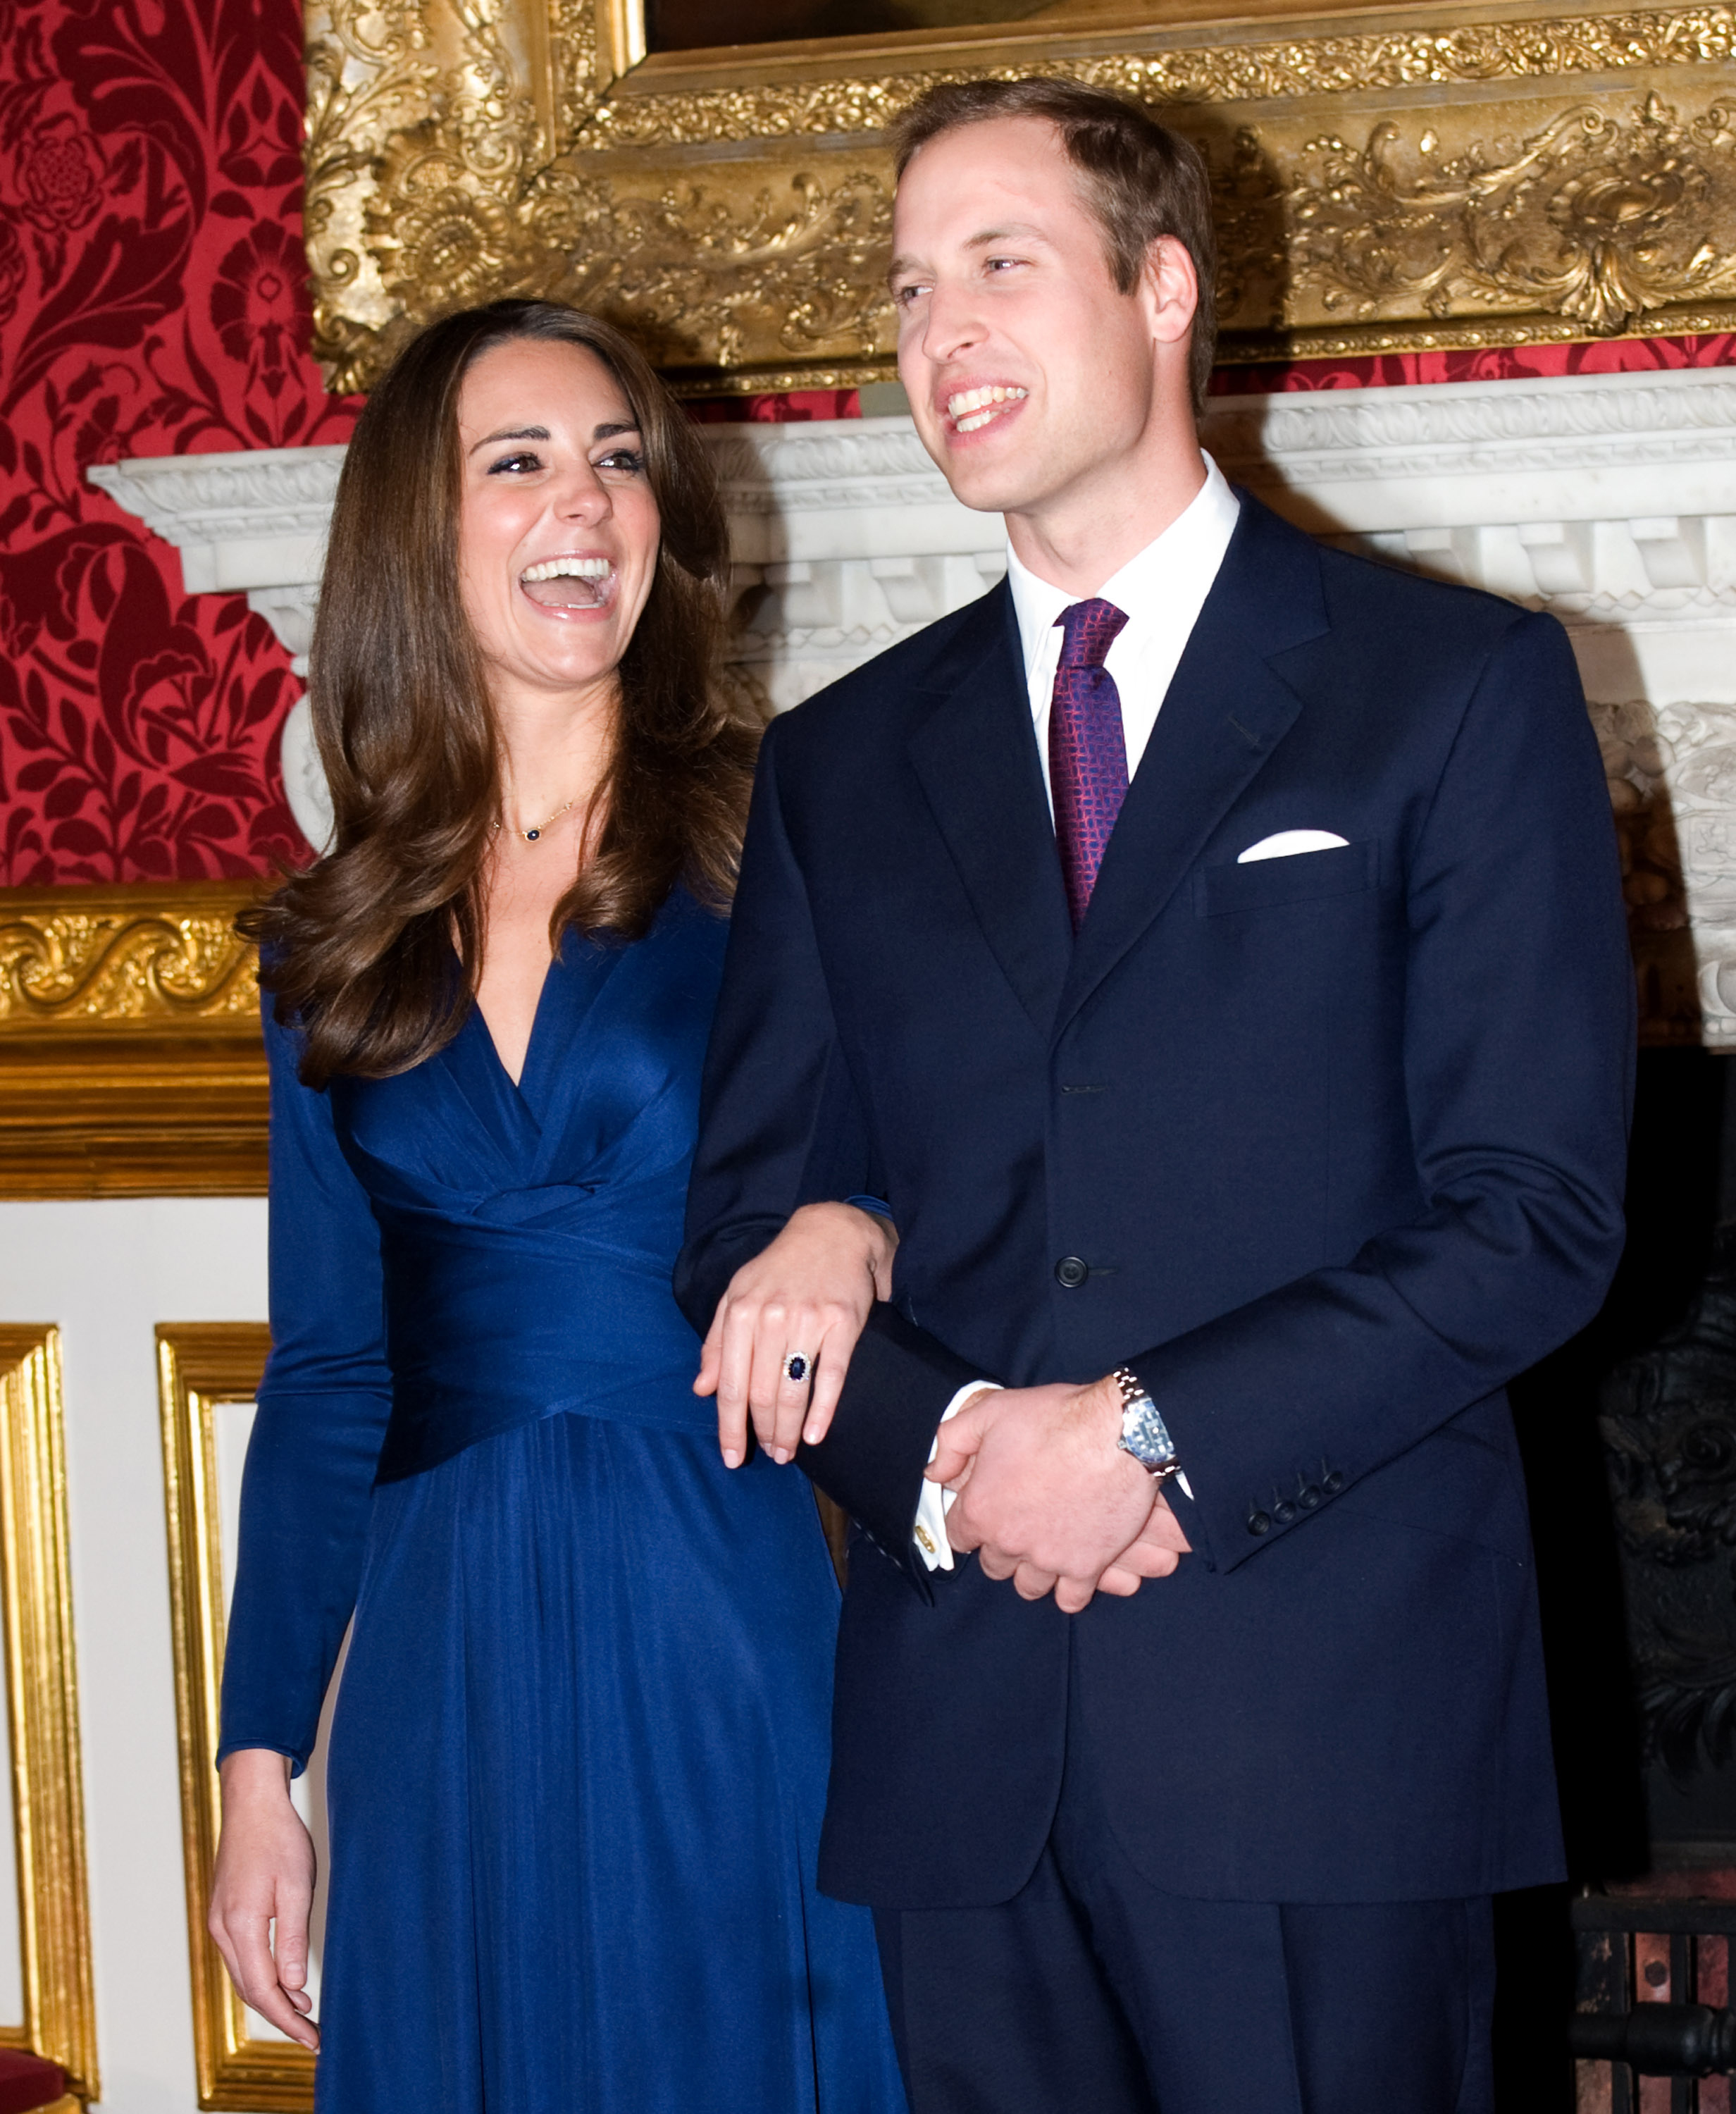 Prince William and Kate Middleton pose for photographs in the State Apartments of St James Palace after announcing their engagement. The couple became engaged during a recent holiday in Kenya having been together for eight years.  London, Nov. 16, 2010.